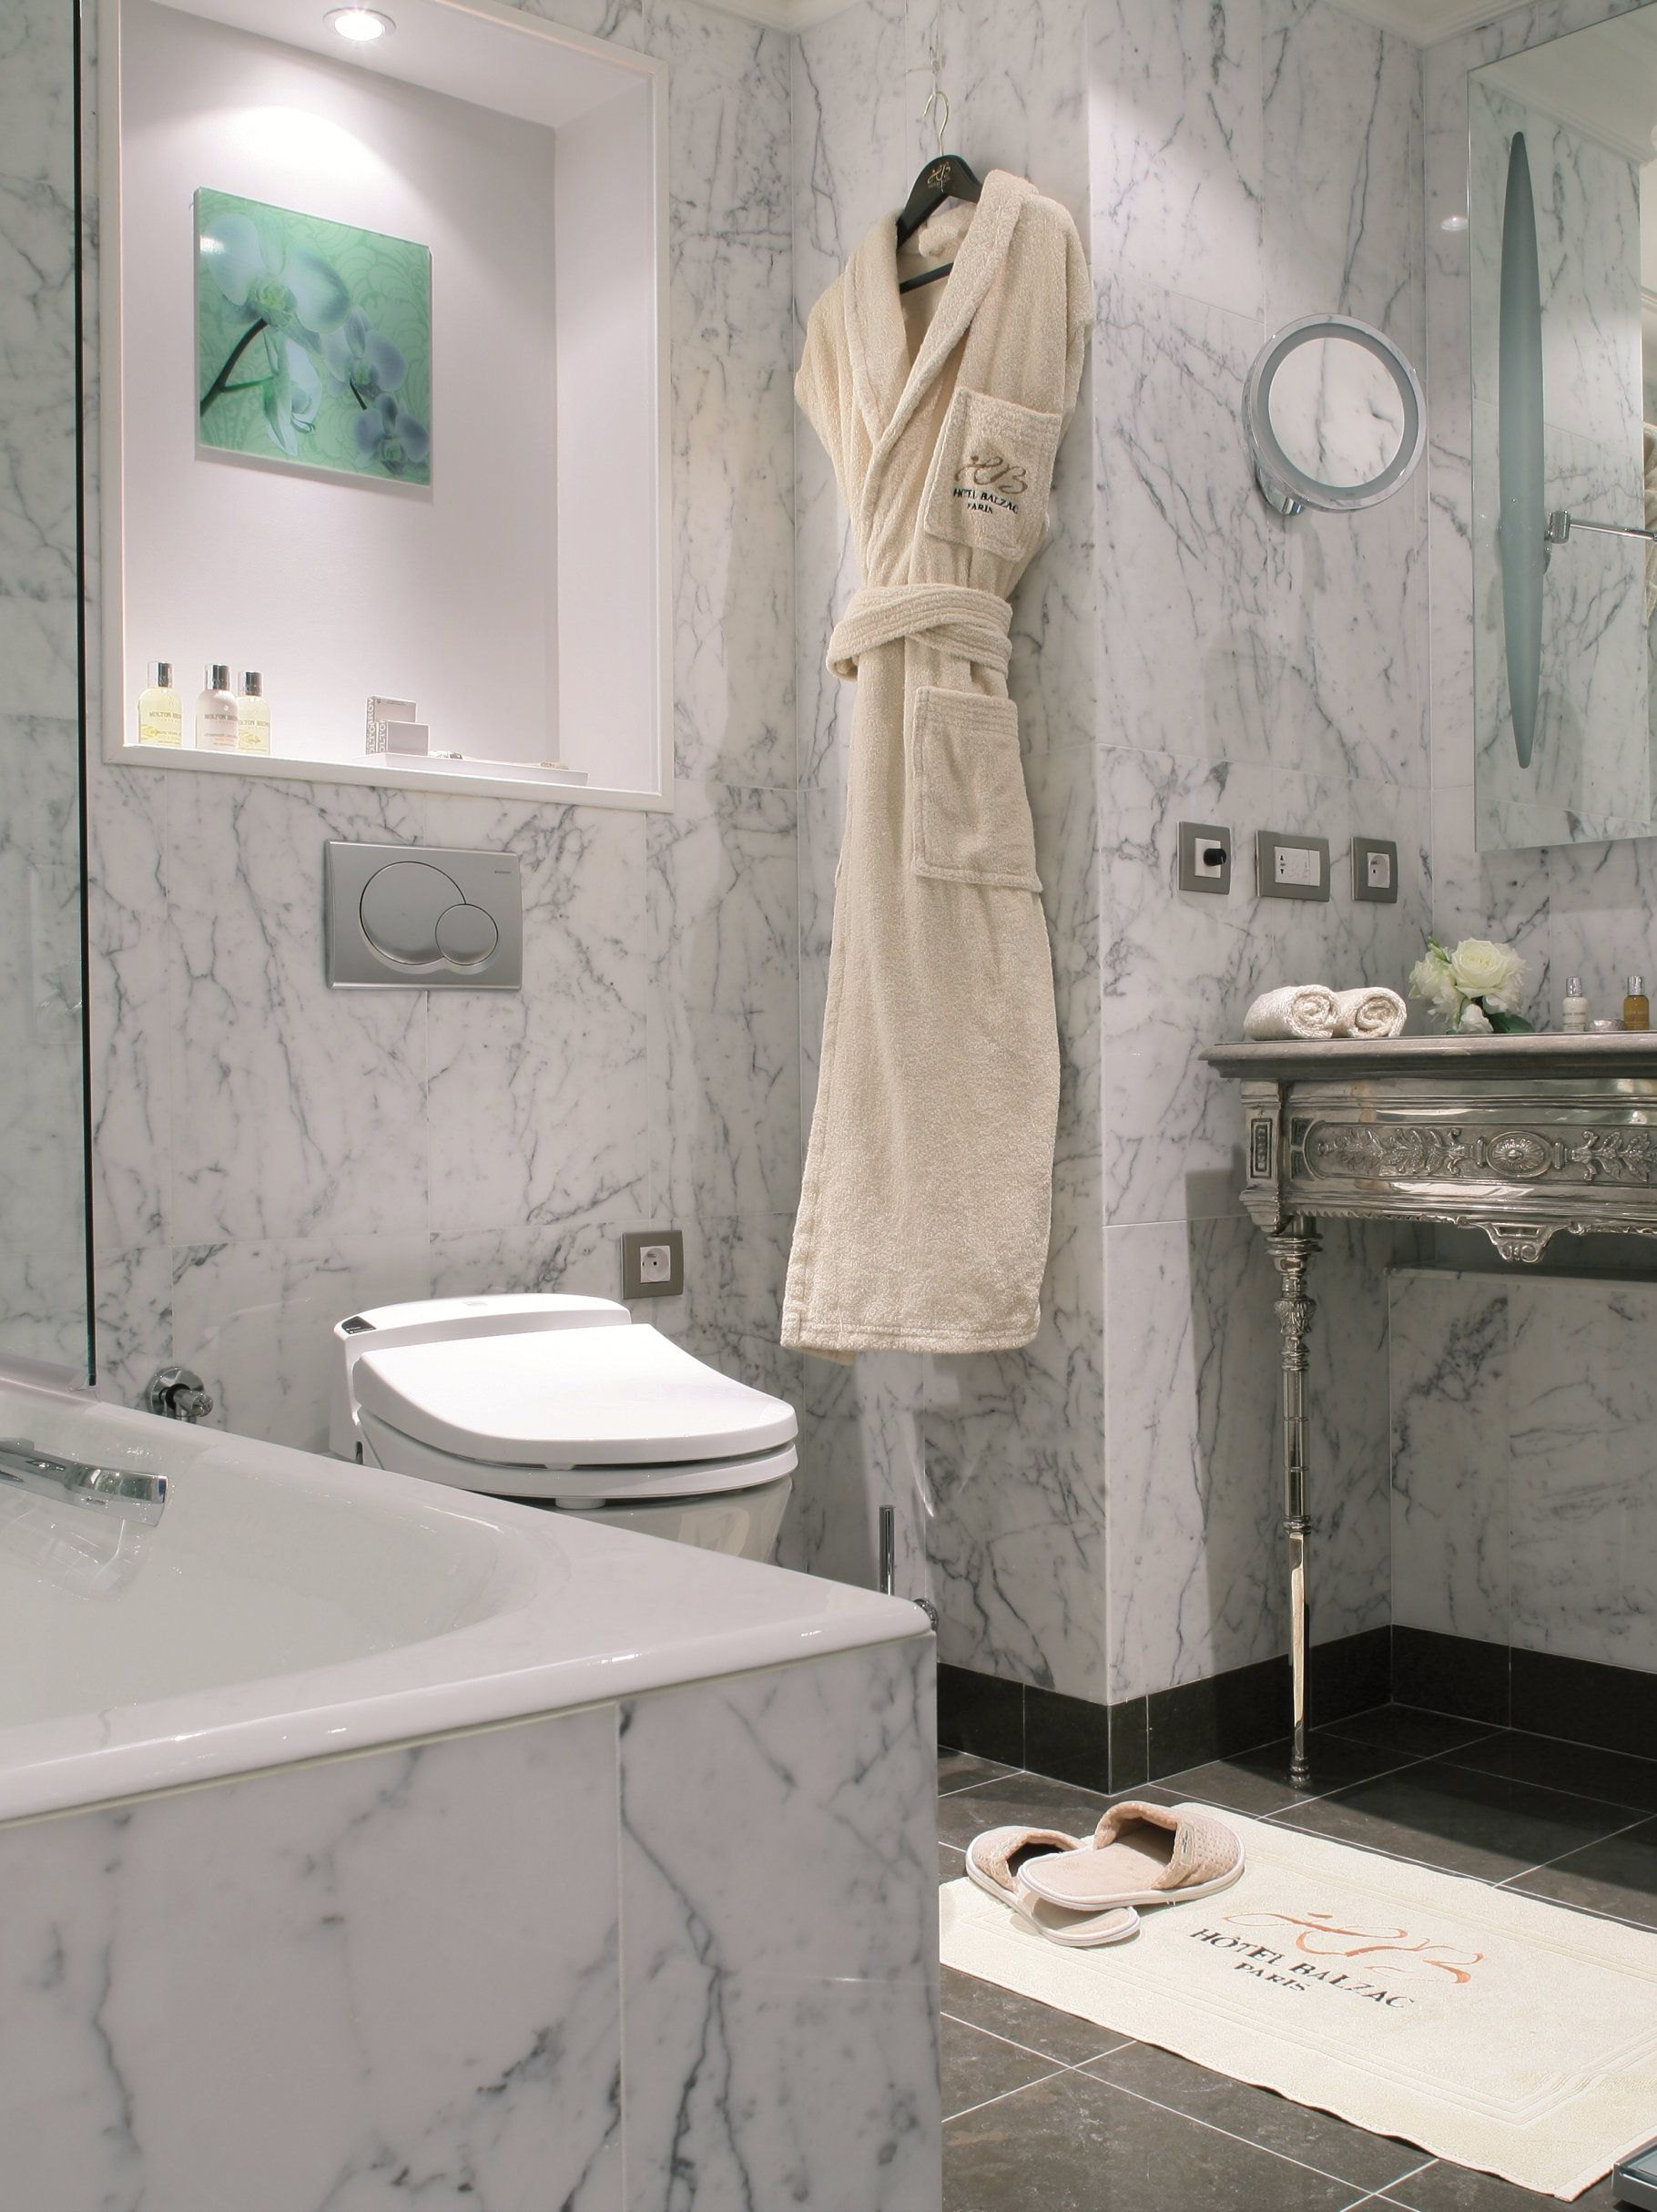 Spacious Marble Bathrooms With Bathtubs Separate Showers In Hotel